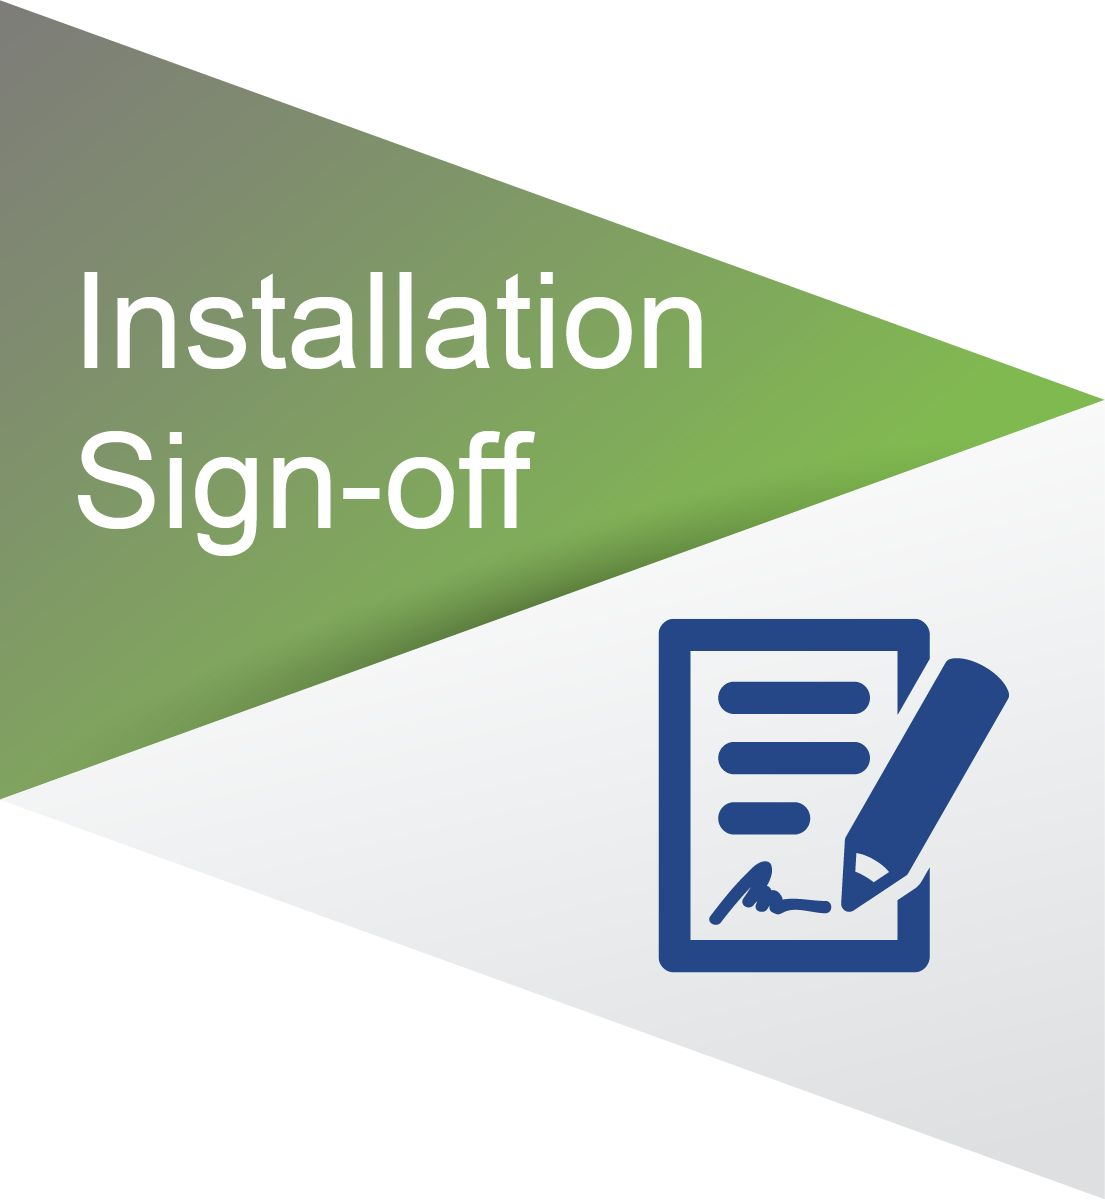 Installation sign-off